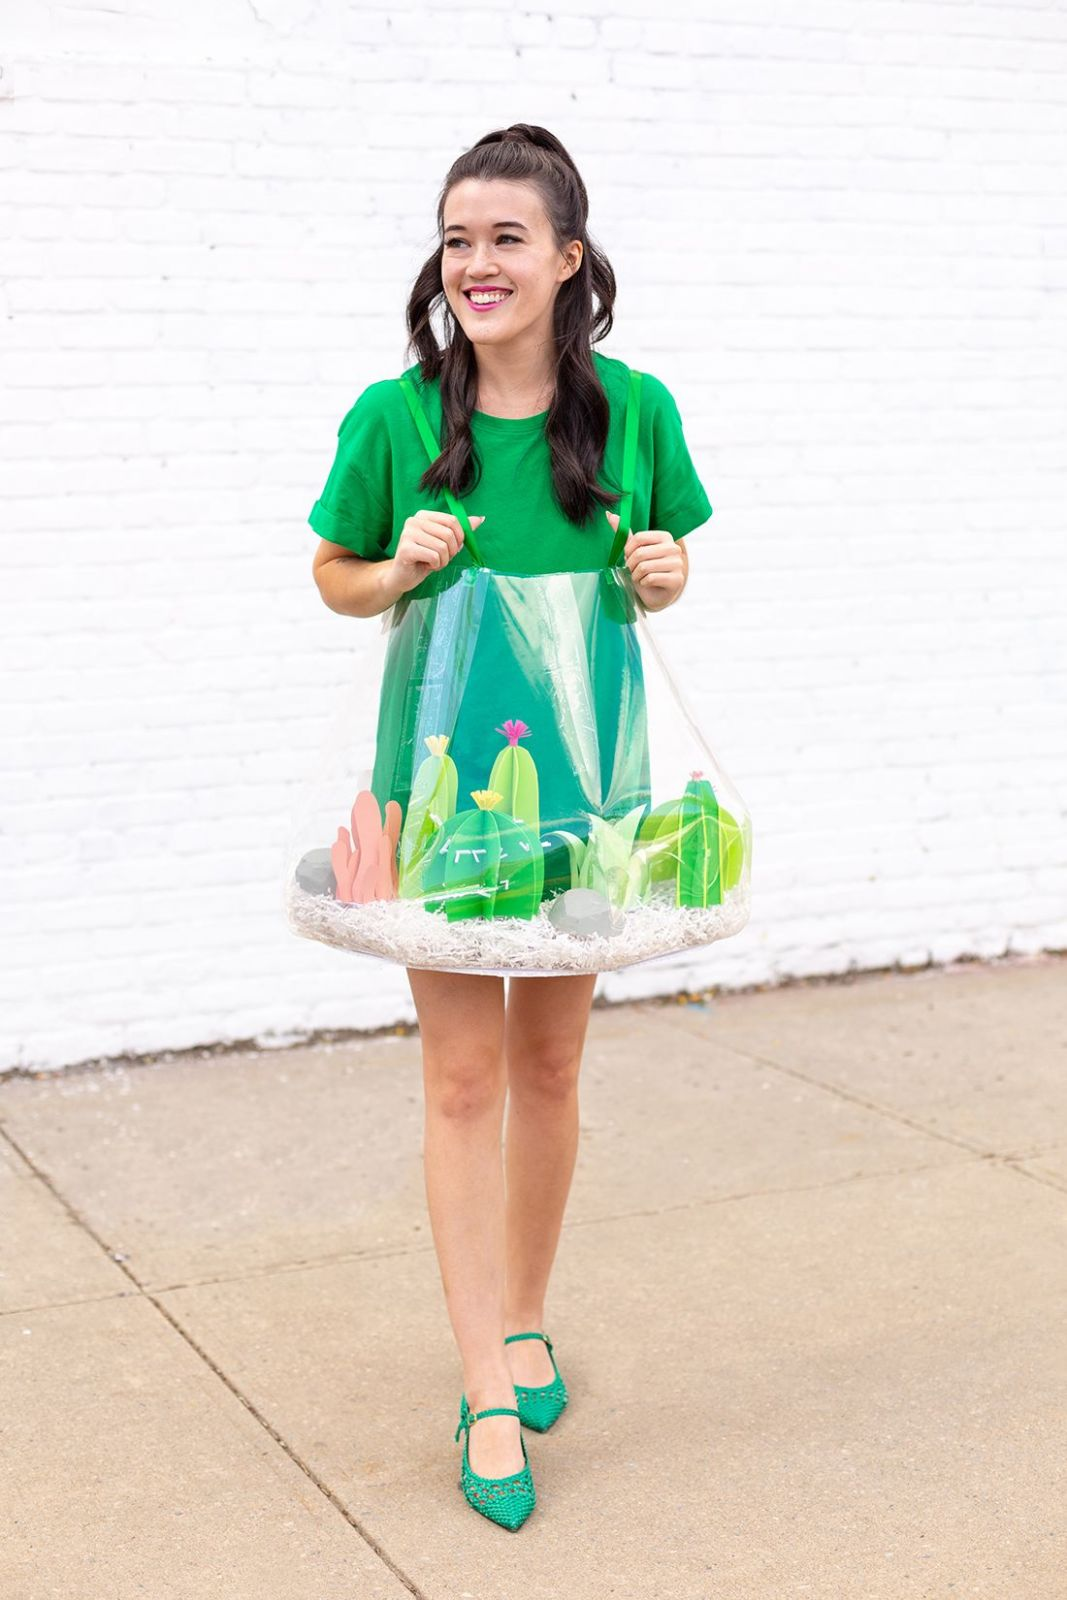 8 Easy Homemade Halloween Costumes for Adults & Kids - Best DIY ..